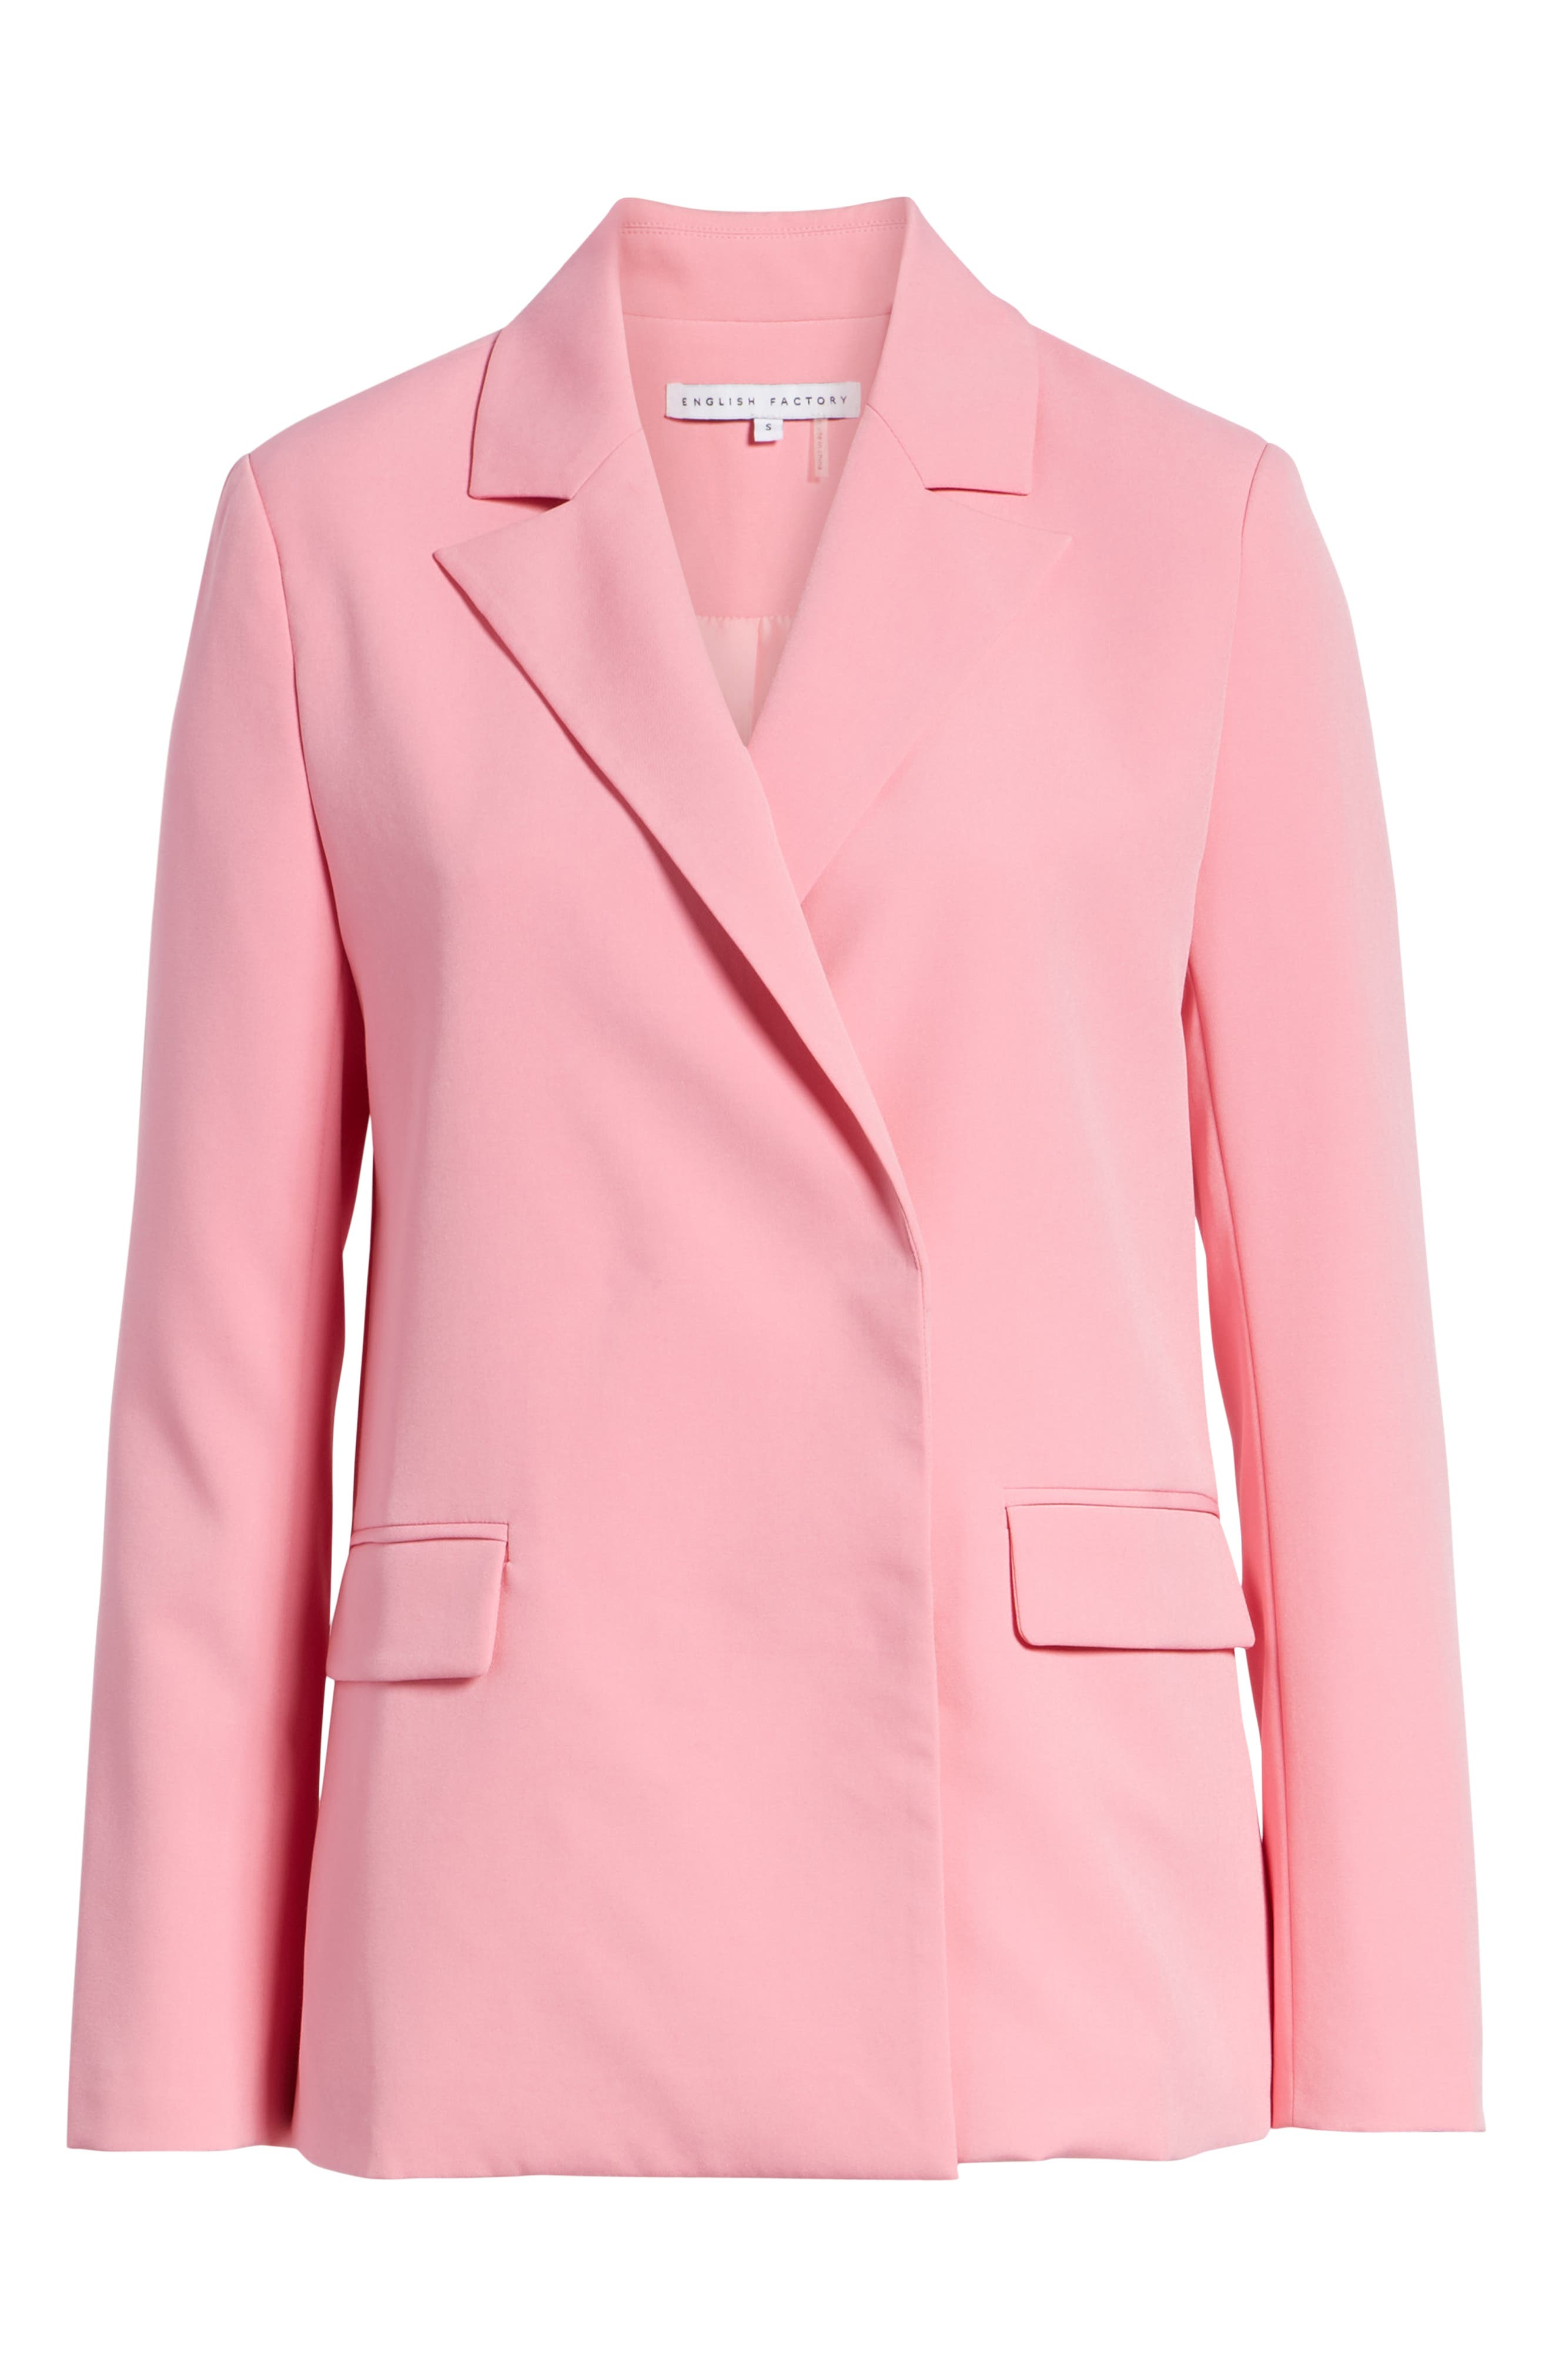 Peaked Lapel Jacket,                             Alternate thumbnail 5, color,                             CANDY PINK